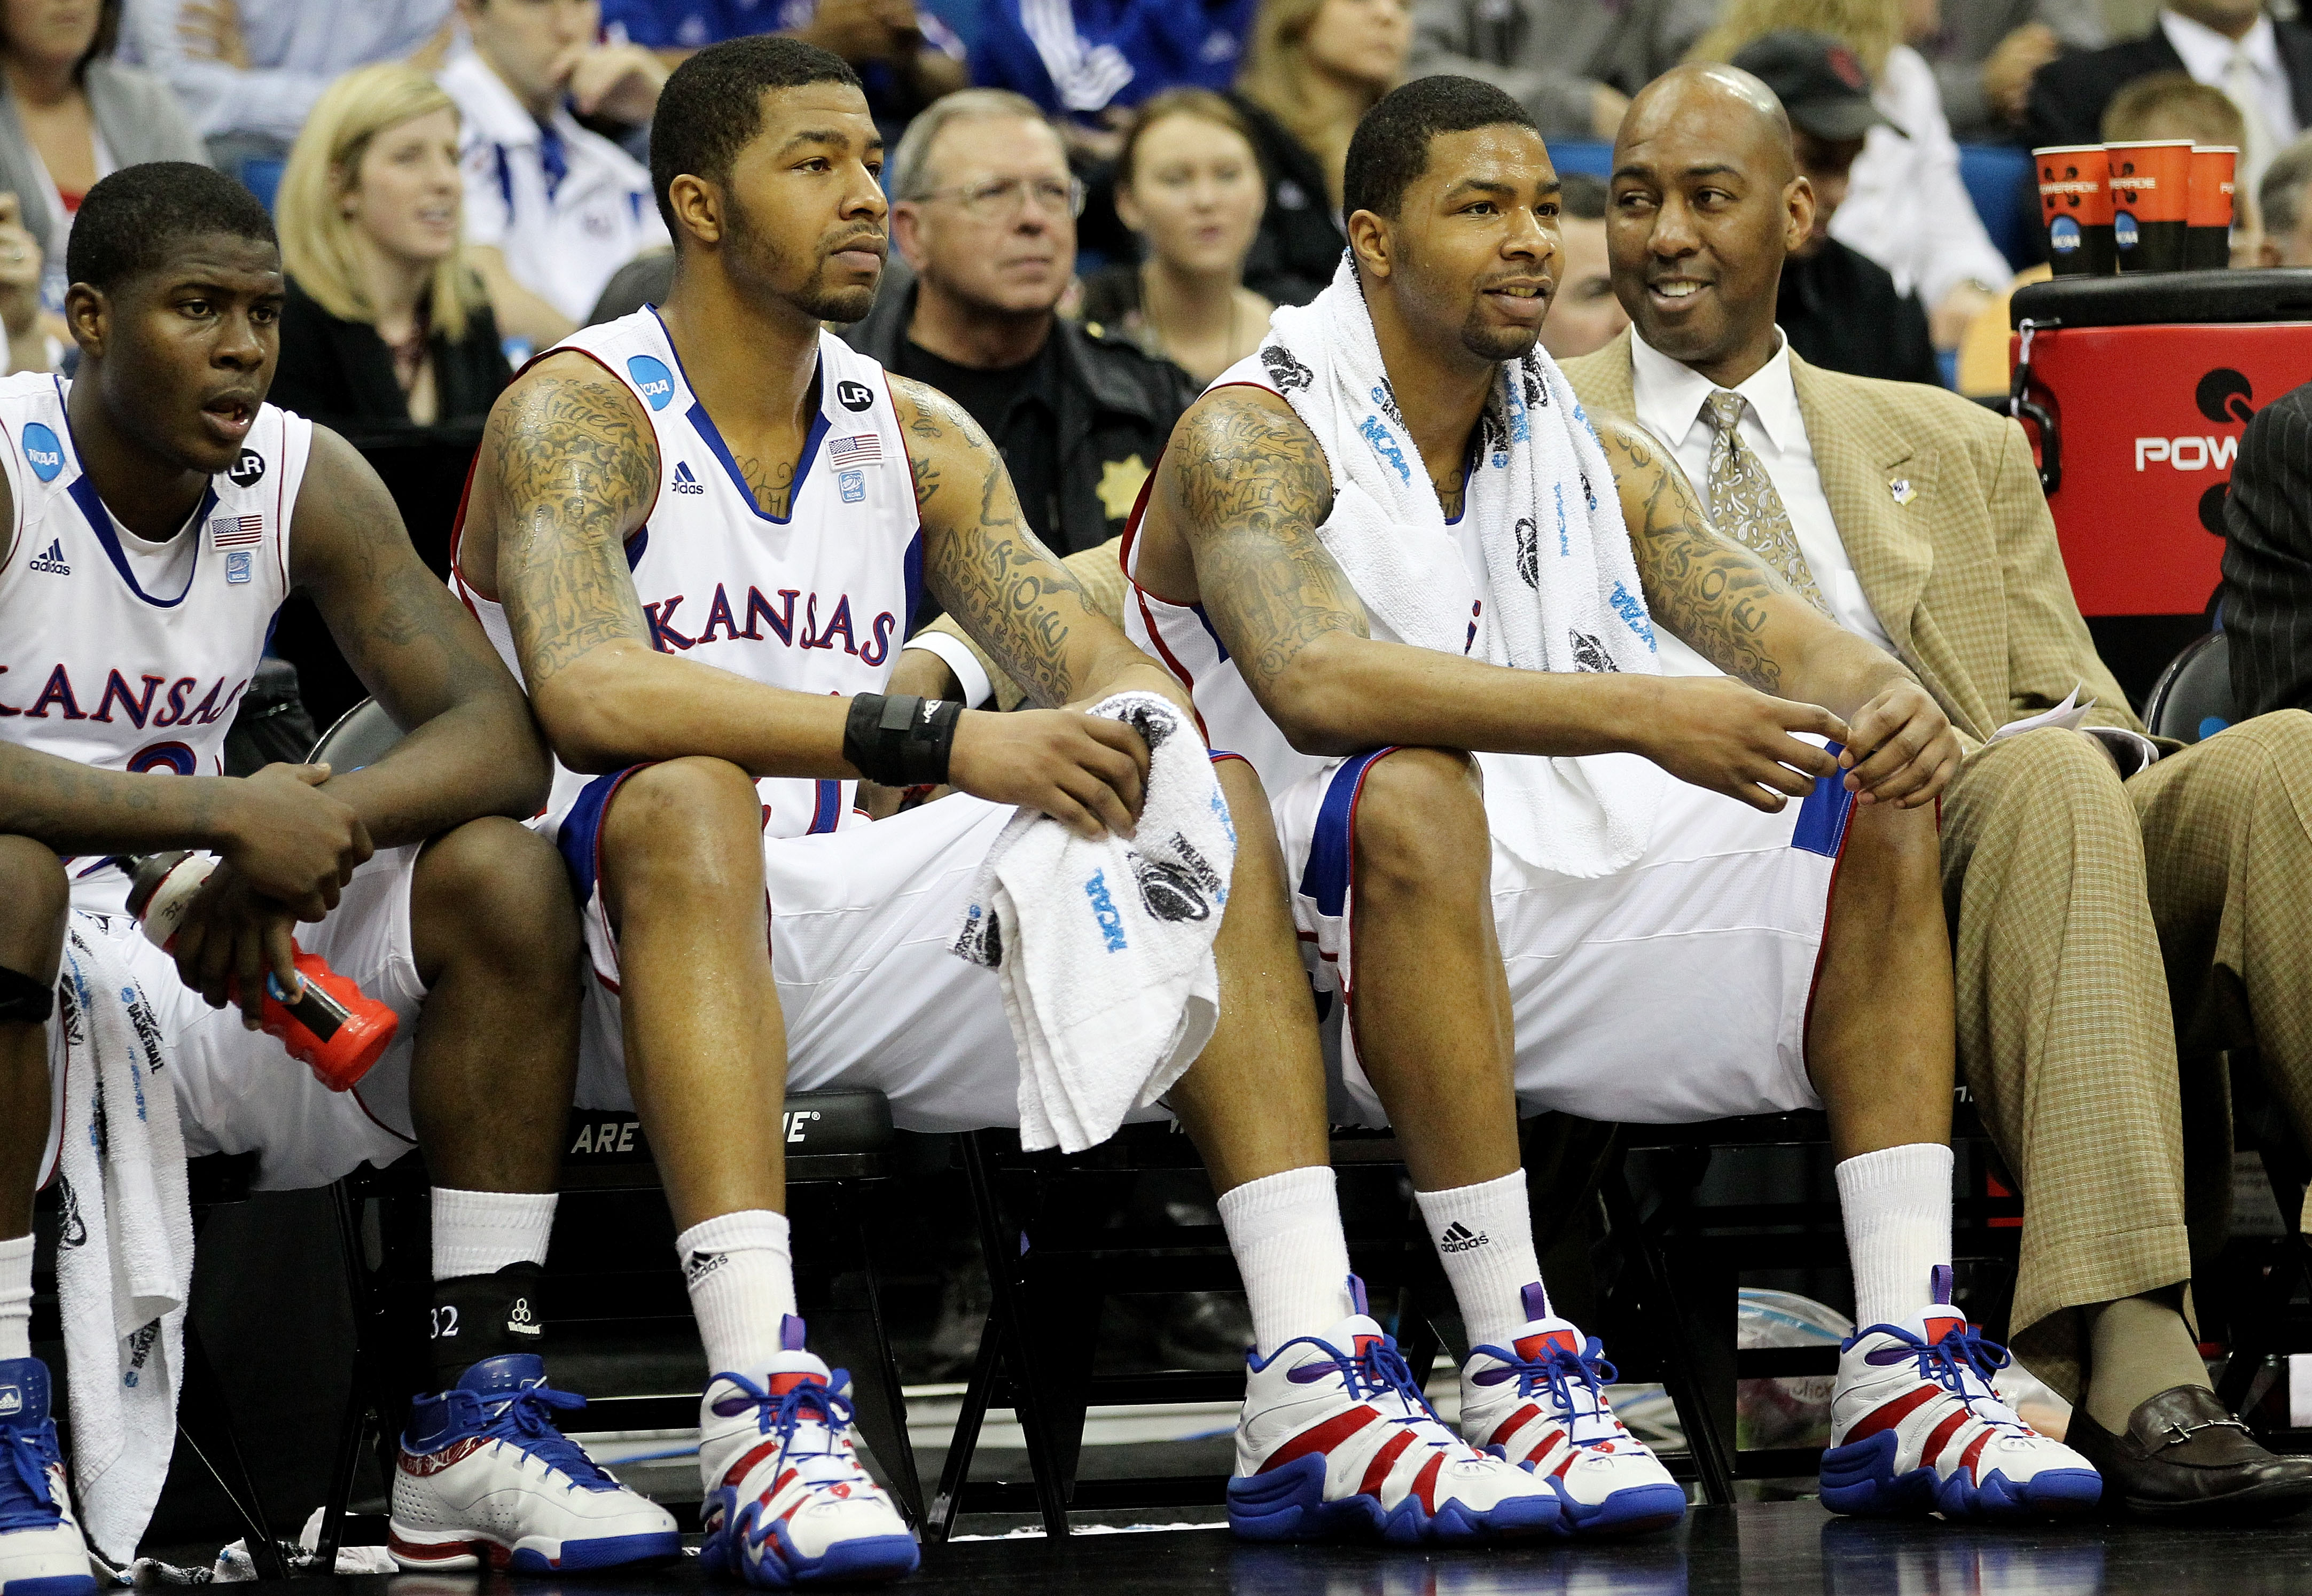 TULSA, OK - MARCH 18:  (2nd and 3rd from L) Markieff Morris #21 and Marcus Morris #22 of the Kansas Jayhawks sit on the bench during their second round game against the Boston University Terriers in the 2011 NCAA men's basketball tournament at BOK Center